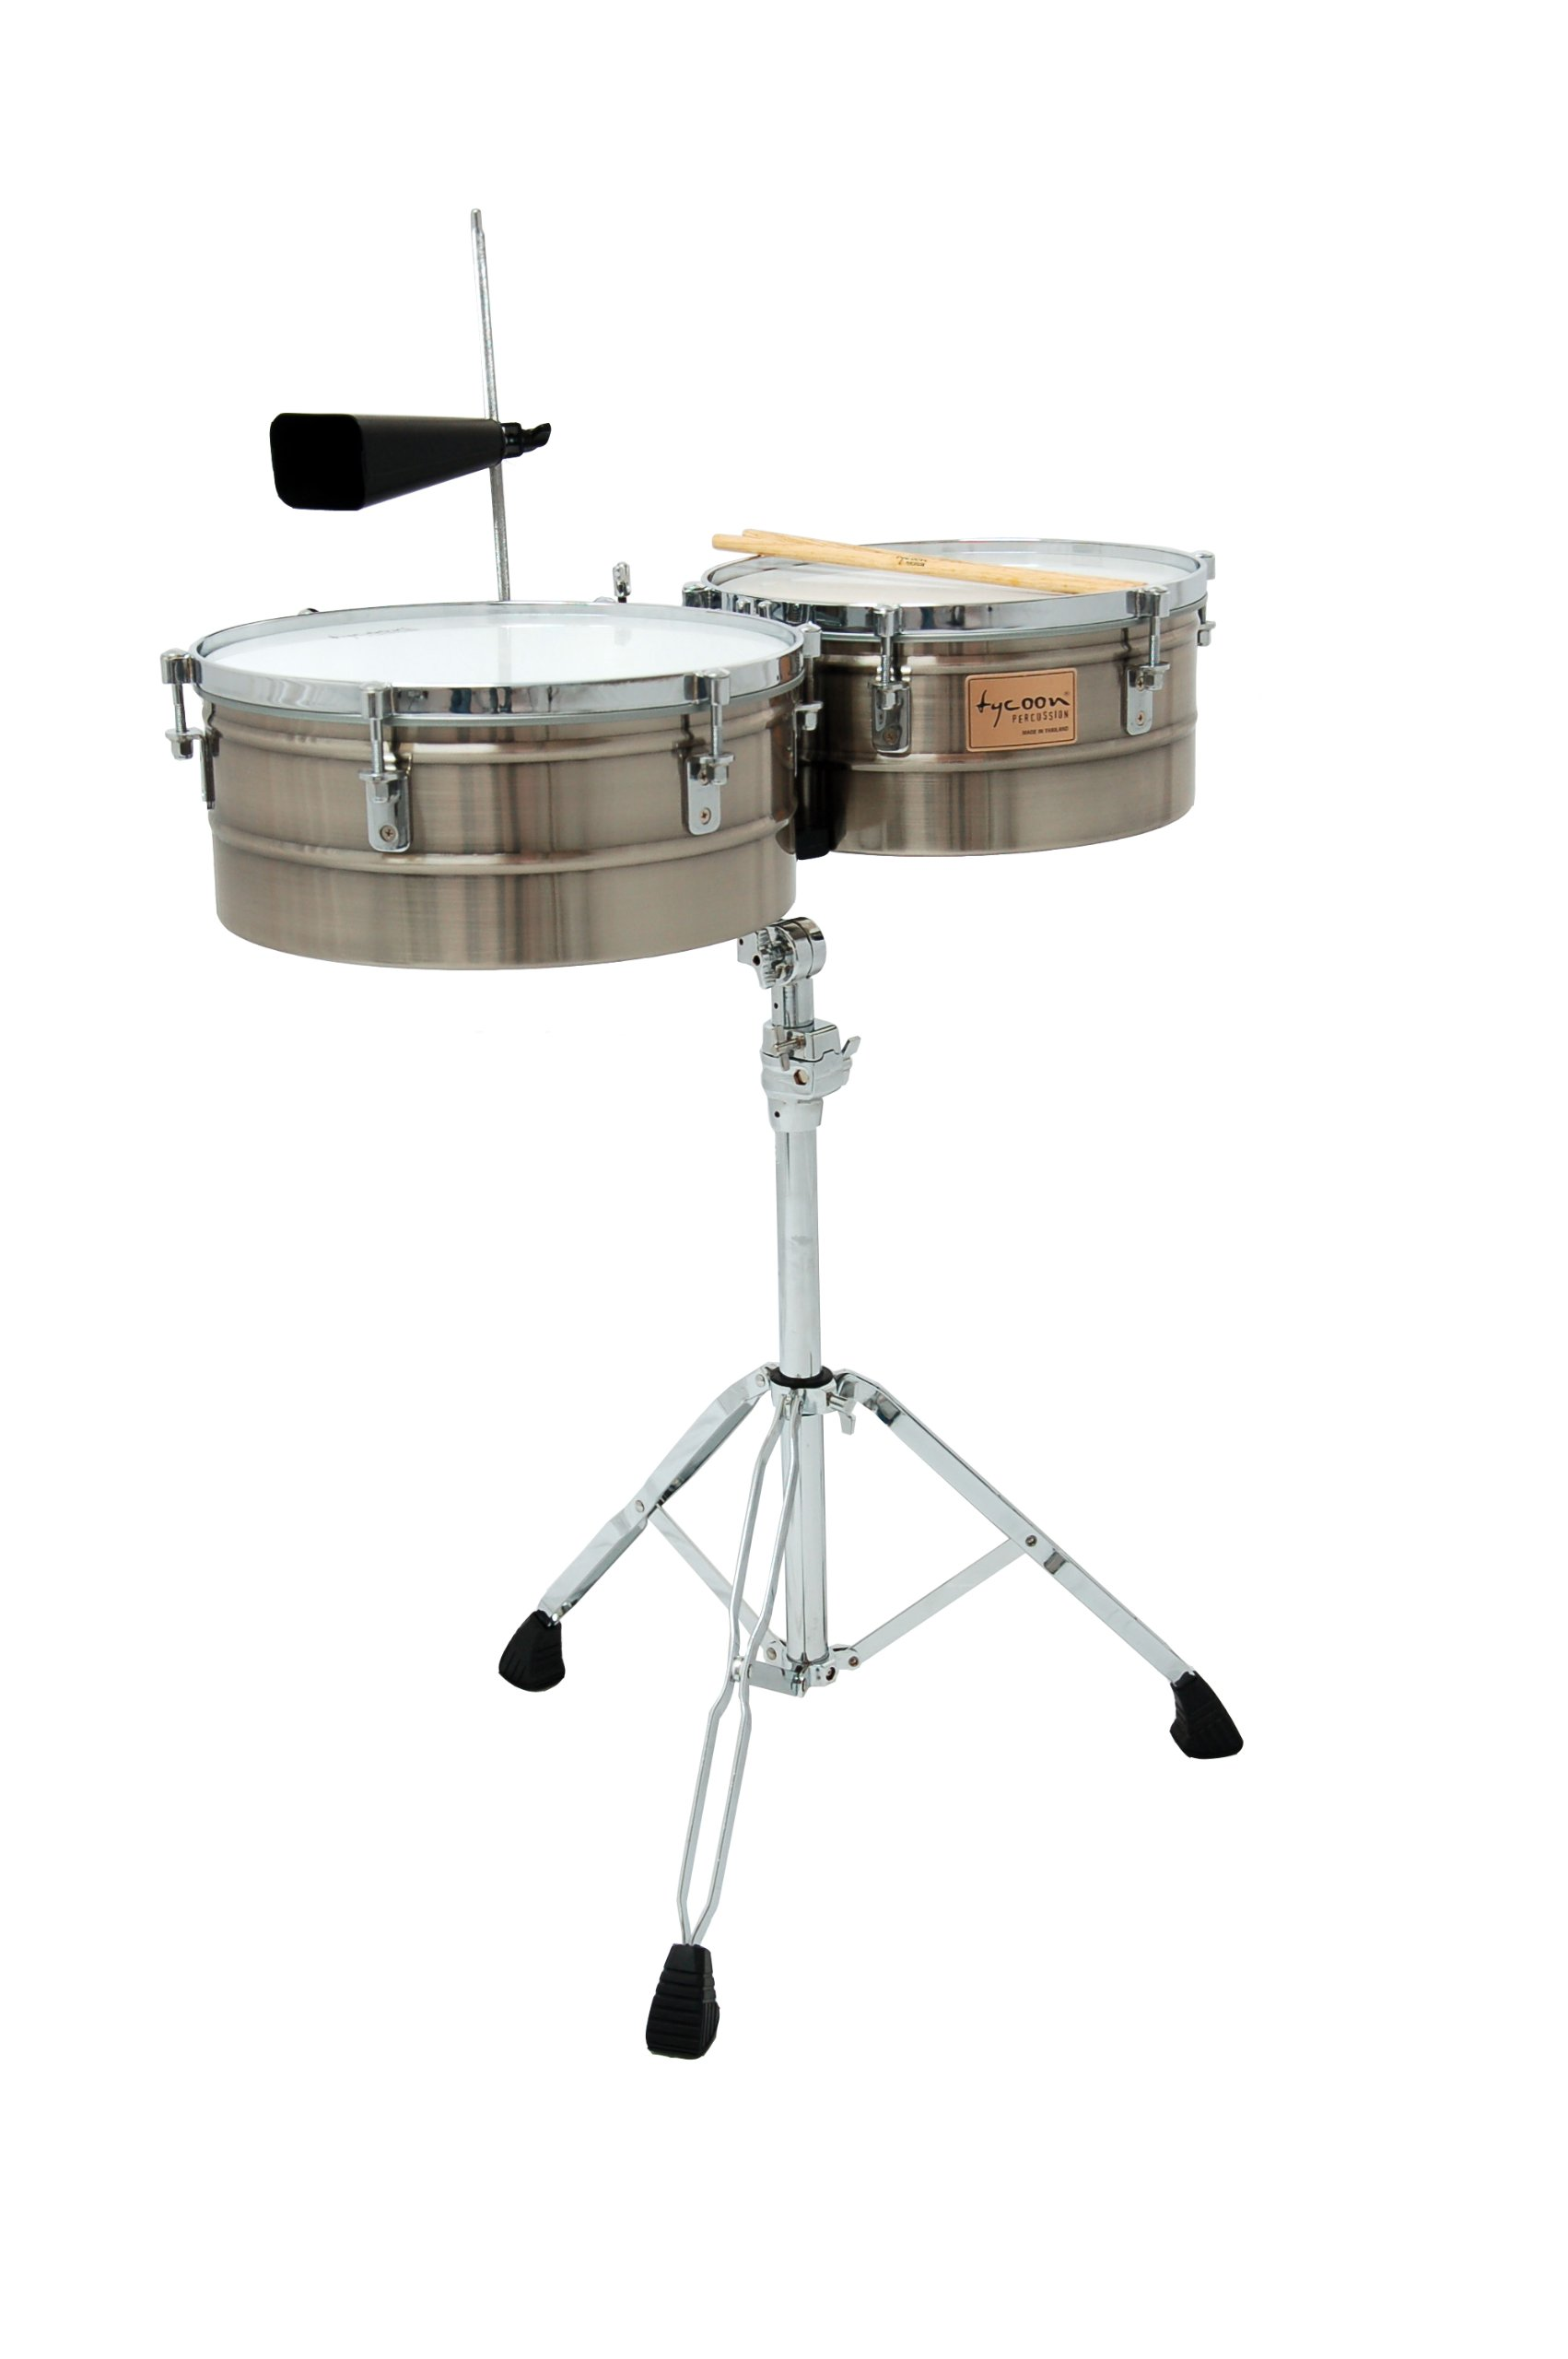 Tycoon Percussion 14 Inch & 15 Inch Brushed Chrome Shell Timbales